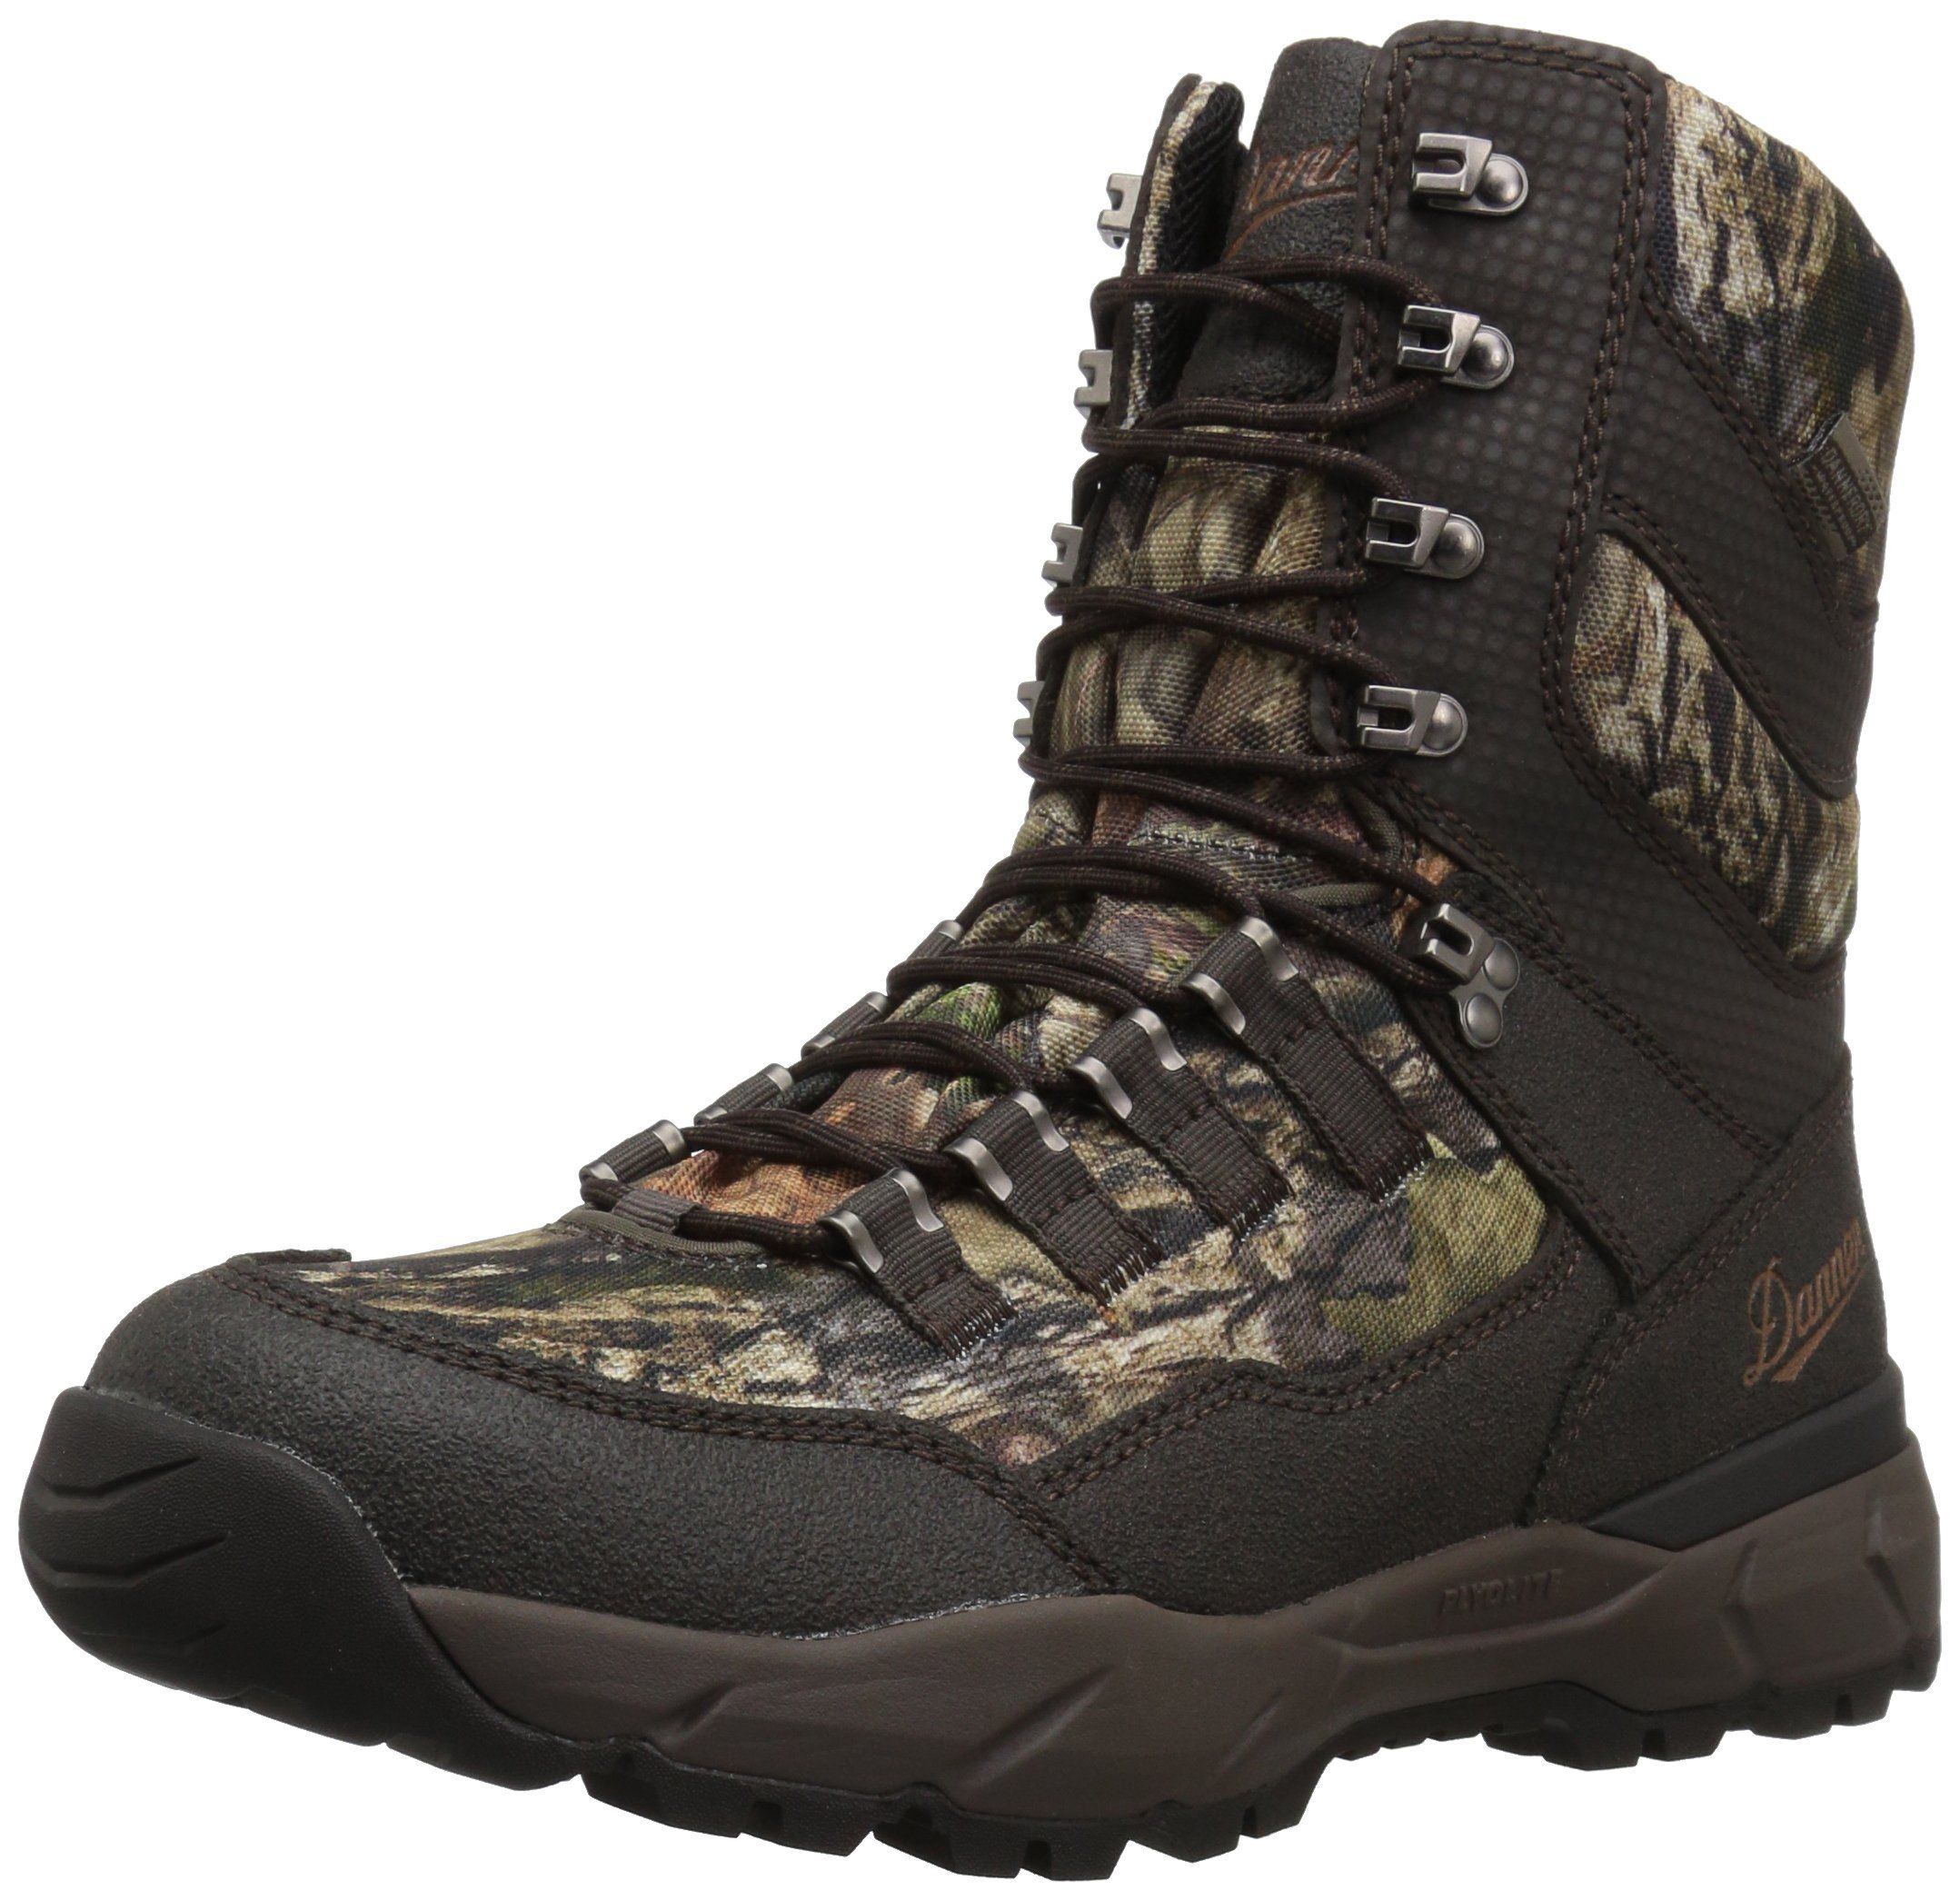 Danner Men's Vital Insulated 400G Hunting Shoes Check